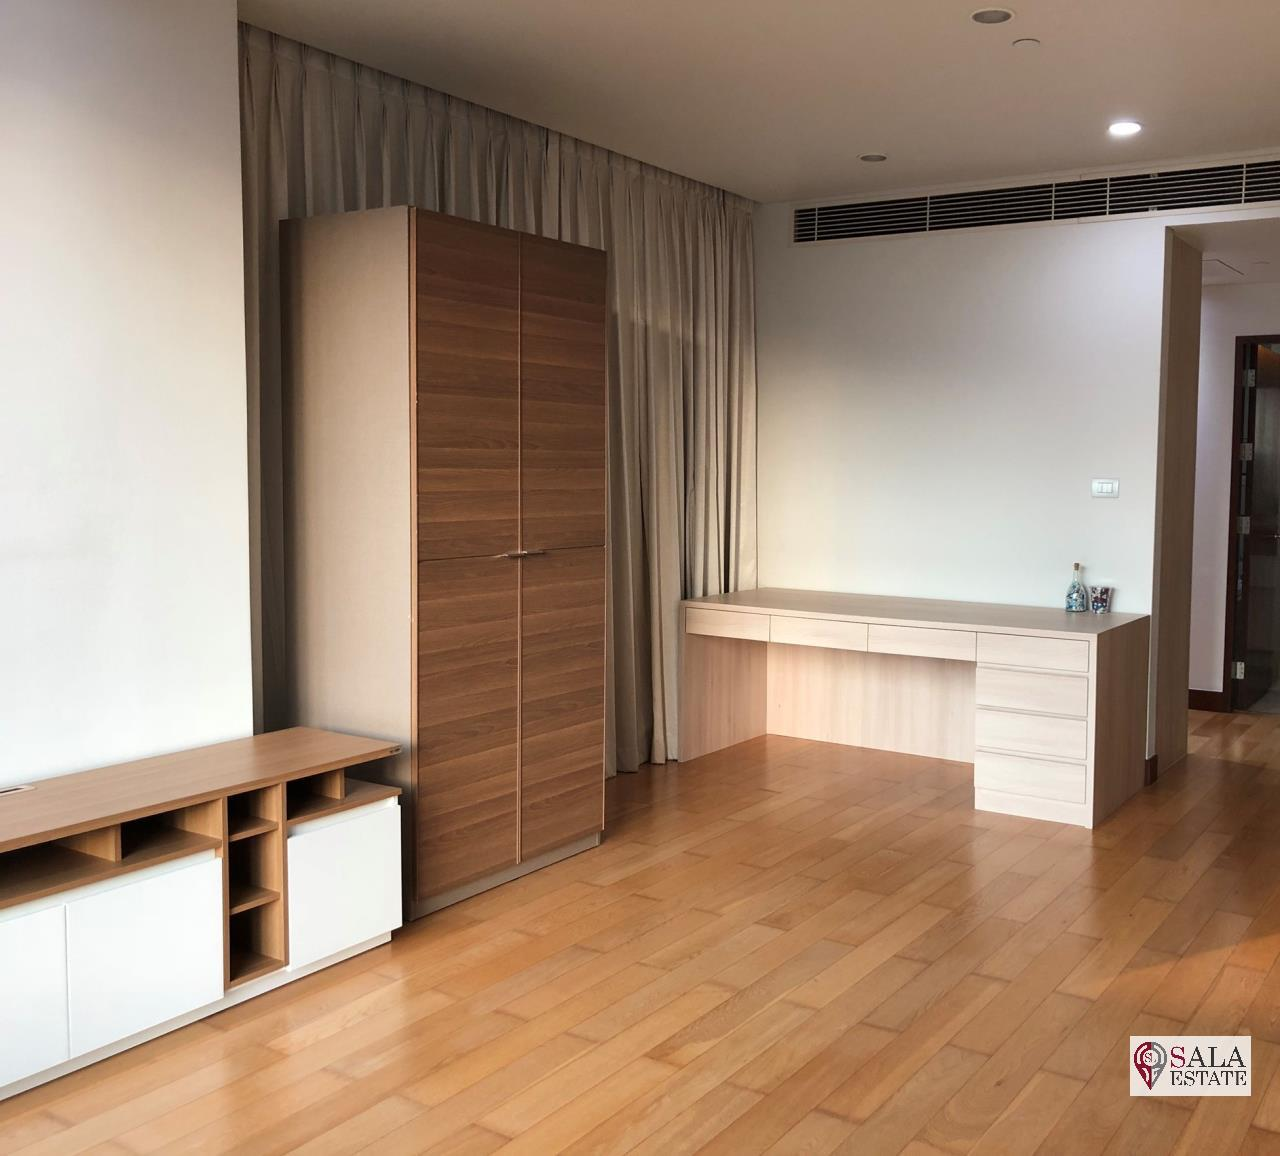 SALA ESTATE Agency's ( FOR SALE/RENT ) THE PARK CHIDLOM – BTS CHIDLOM, 145 SQM, 2 BEDROOMS 2 BATHROOMS, CITY VIEW 4